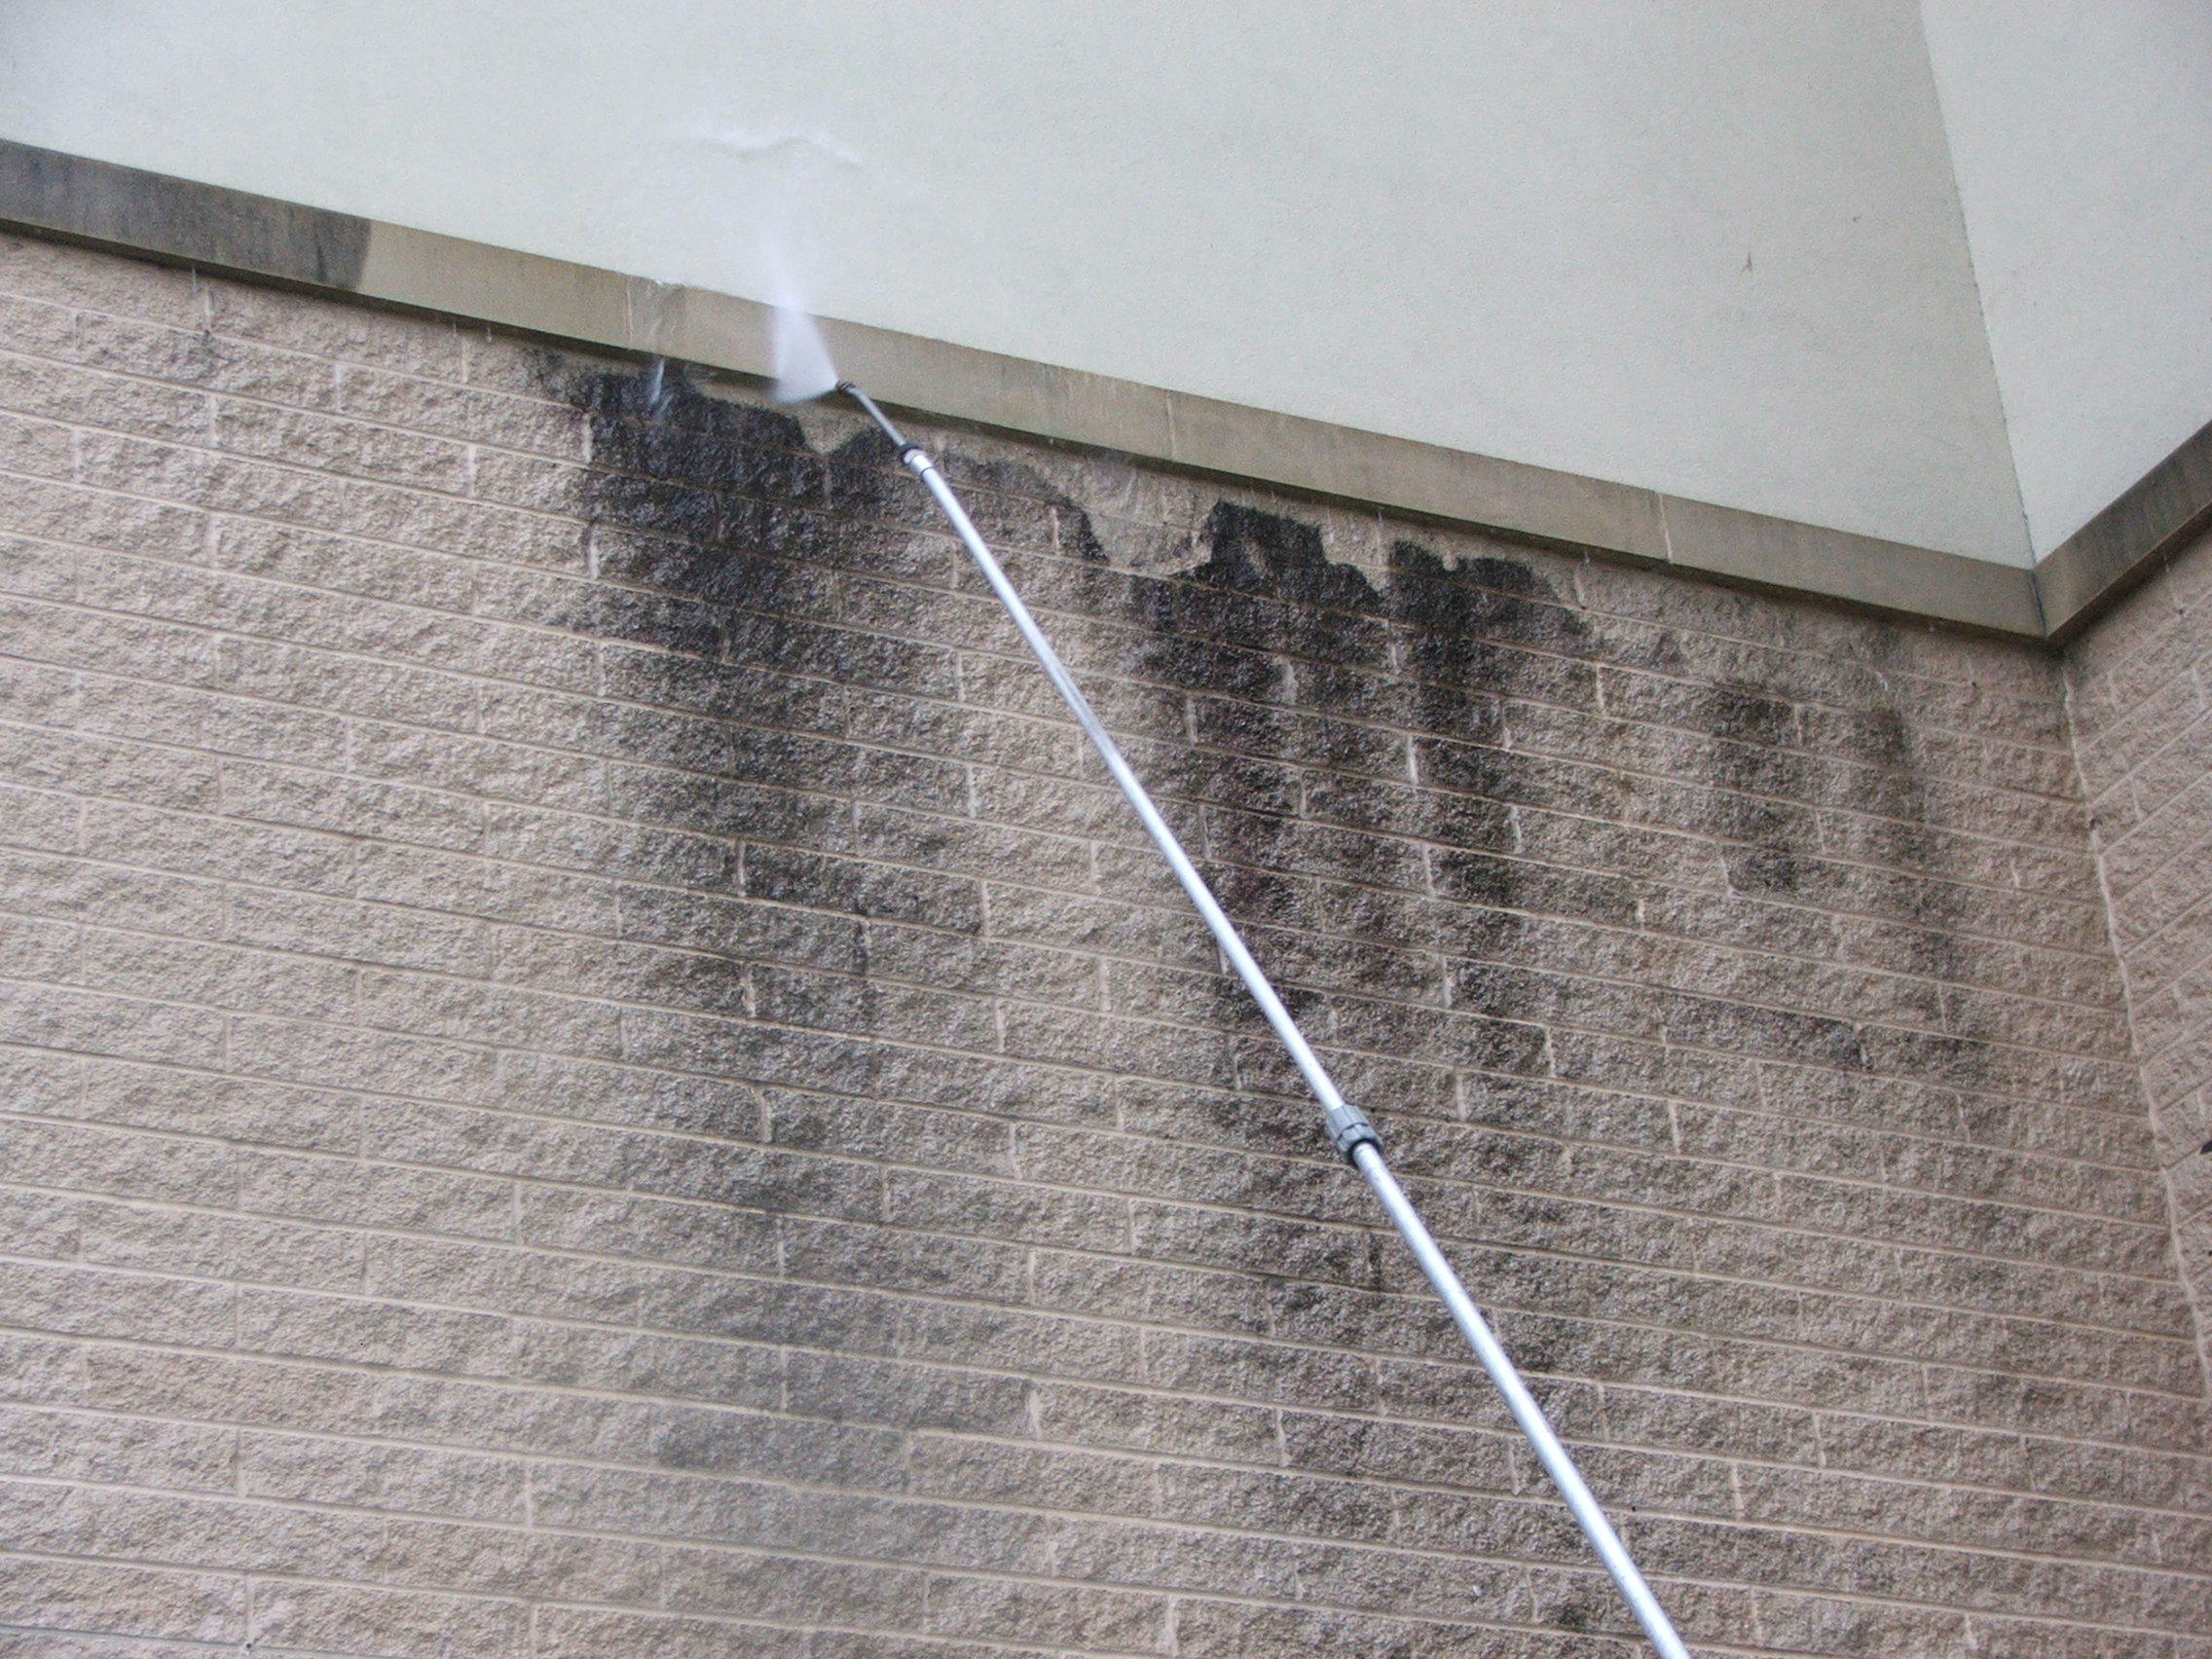 Masonry block wall pressure washing to remove black stains at a nursing home in Harrisburg.